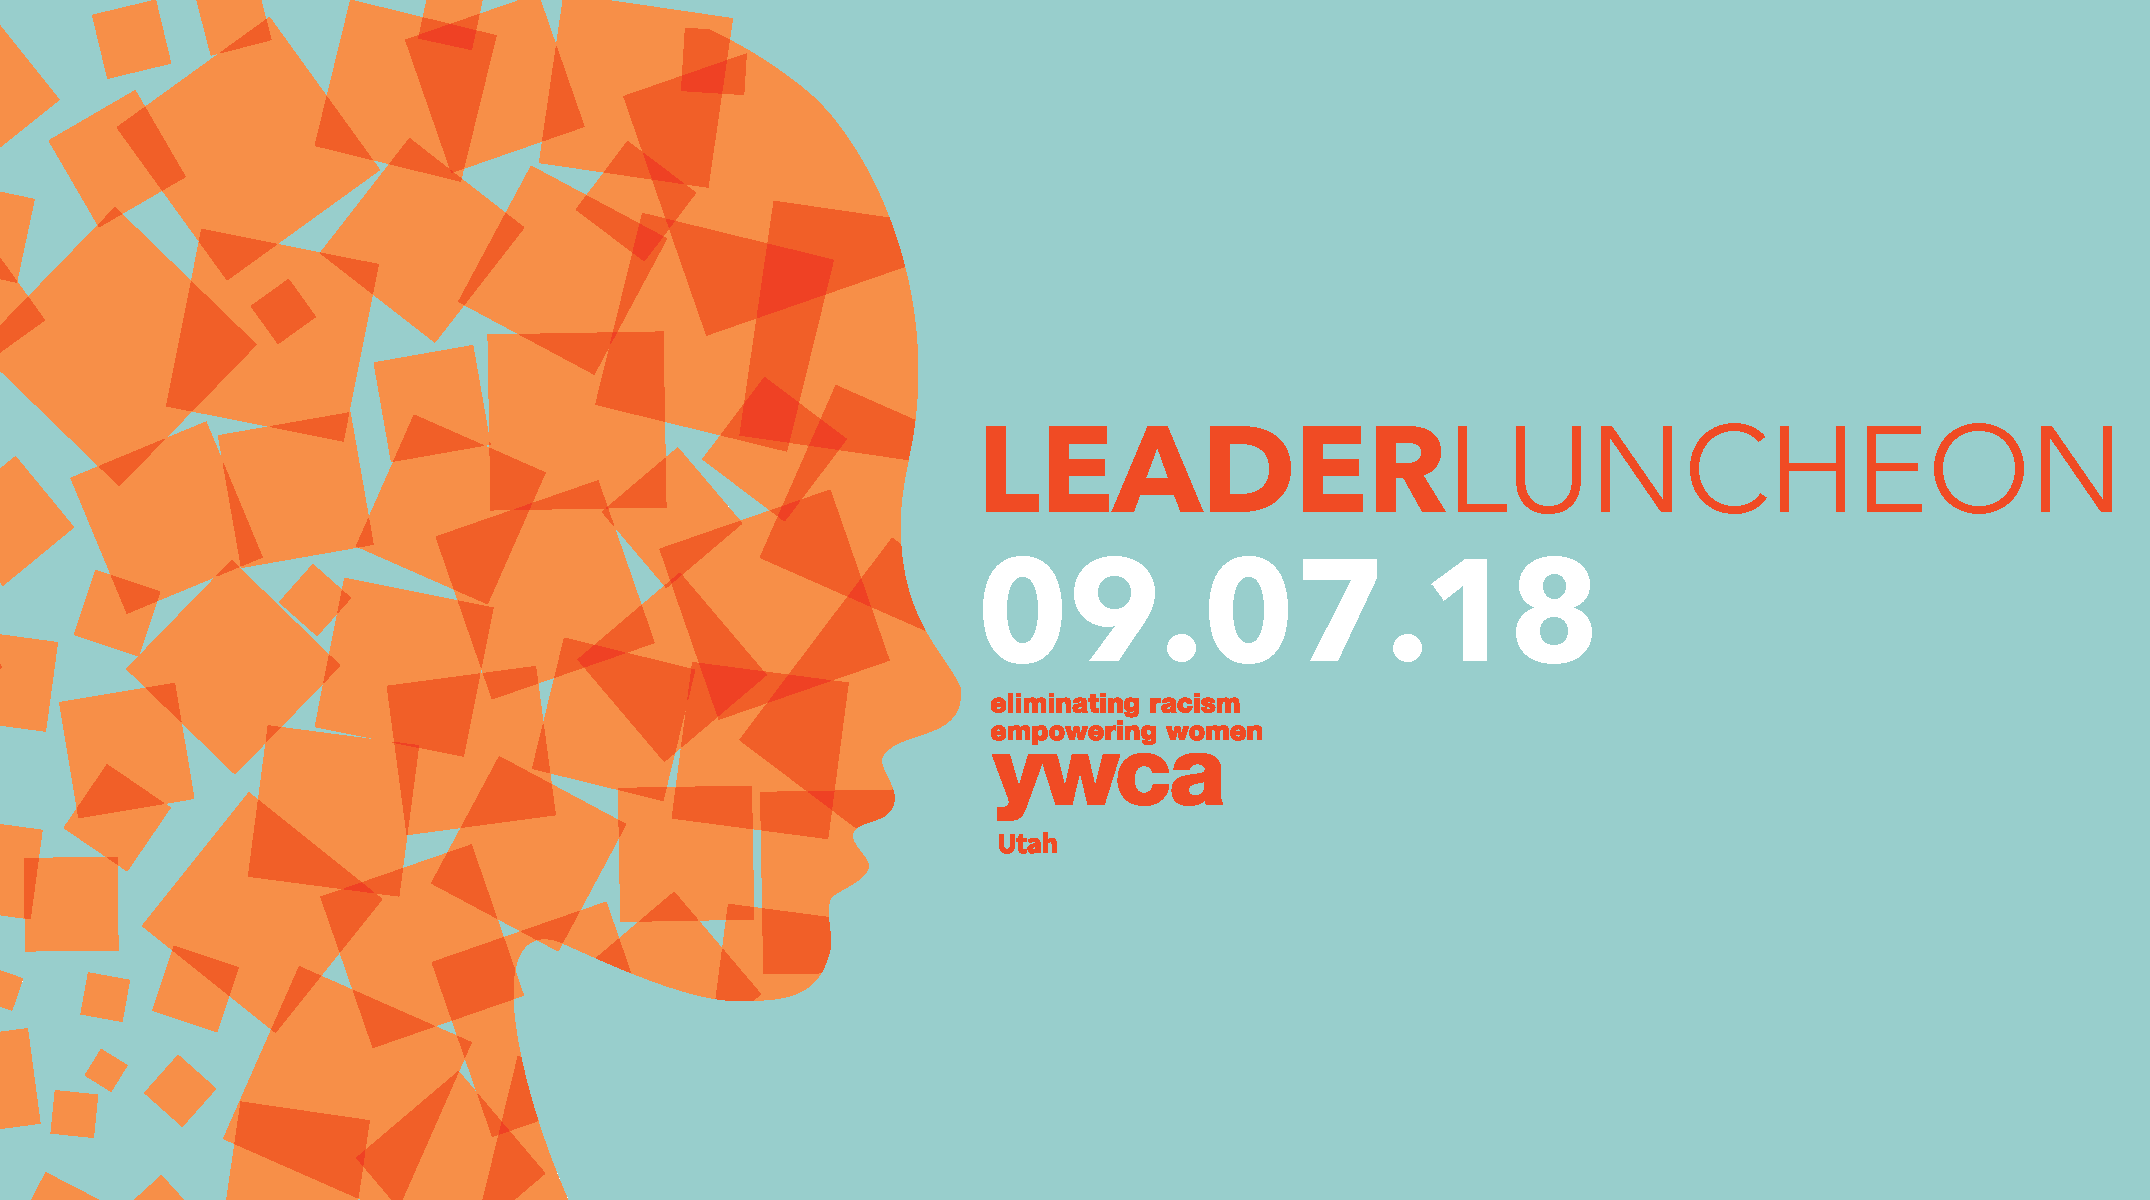 YWCA LeaderLuncheon